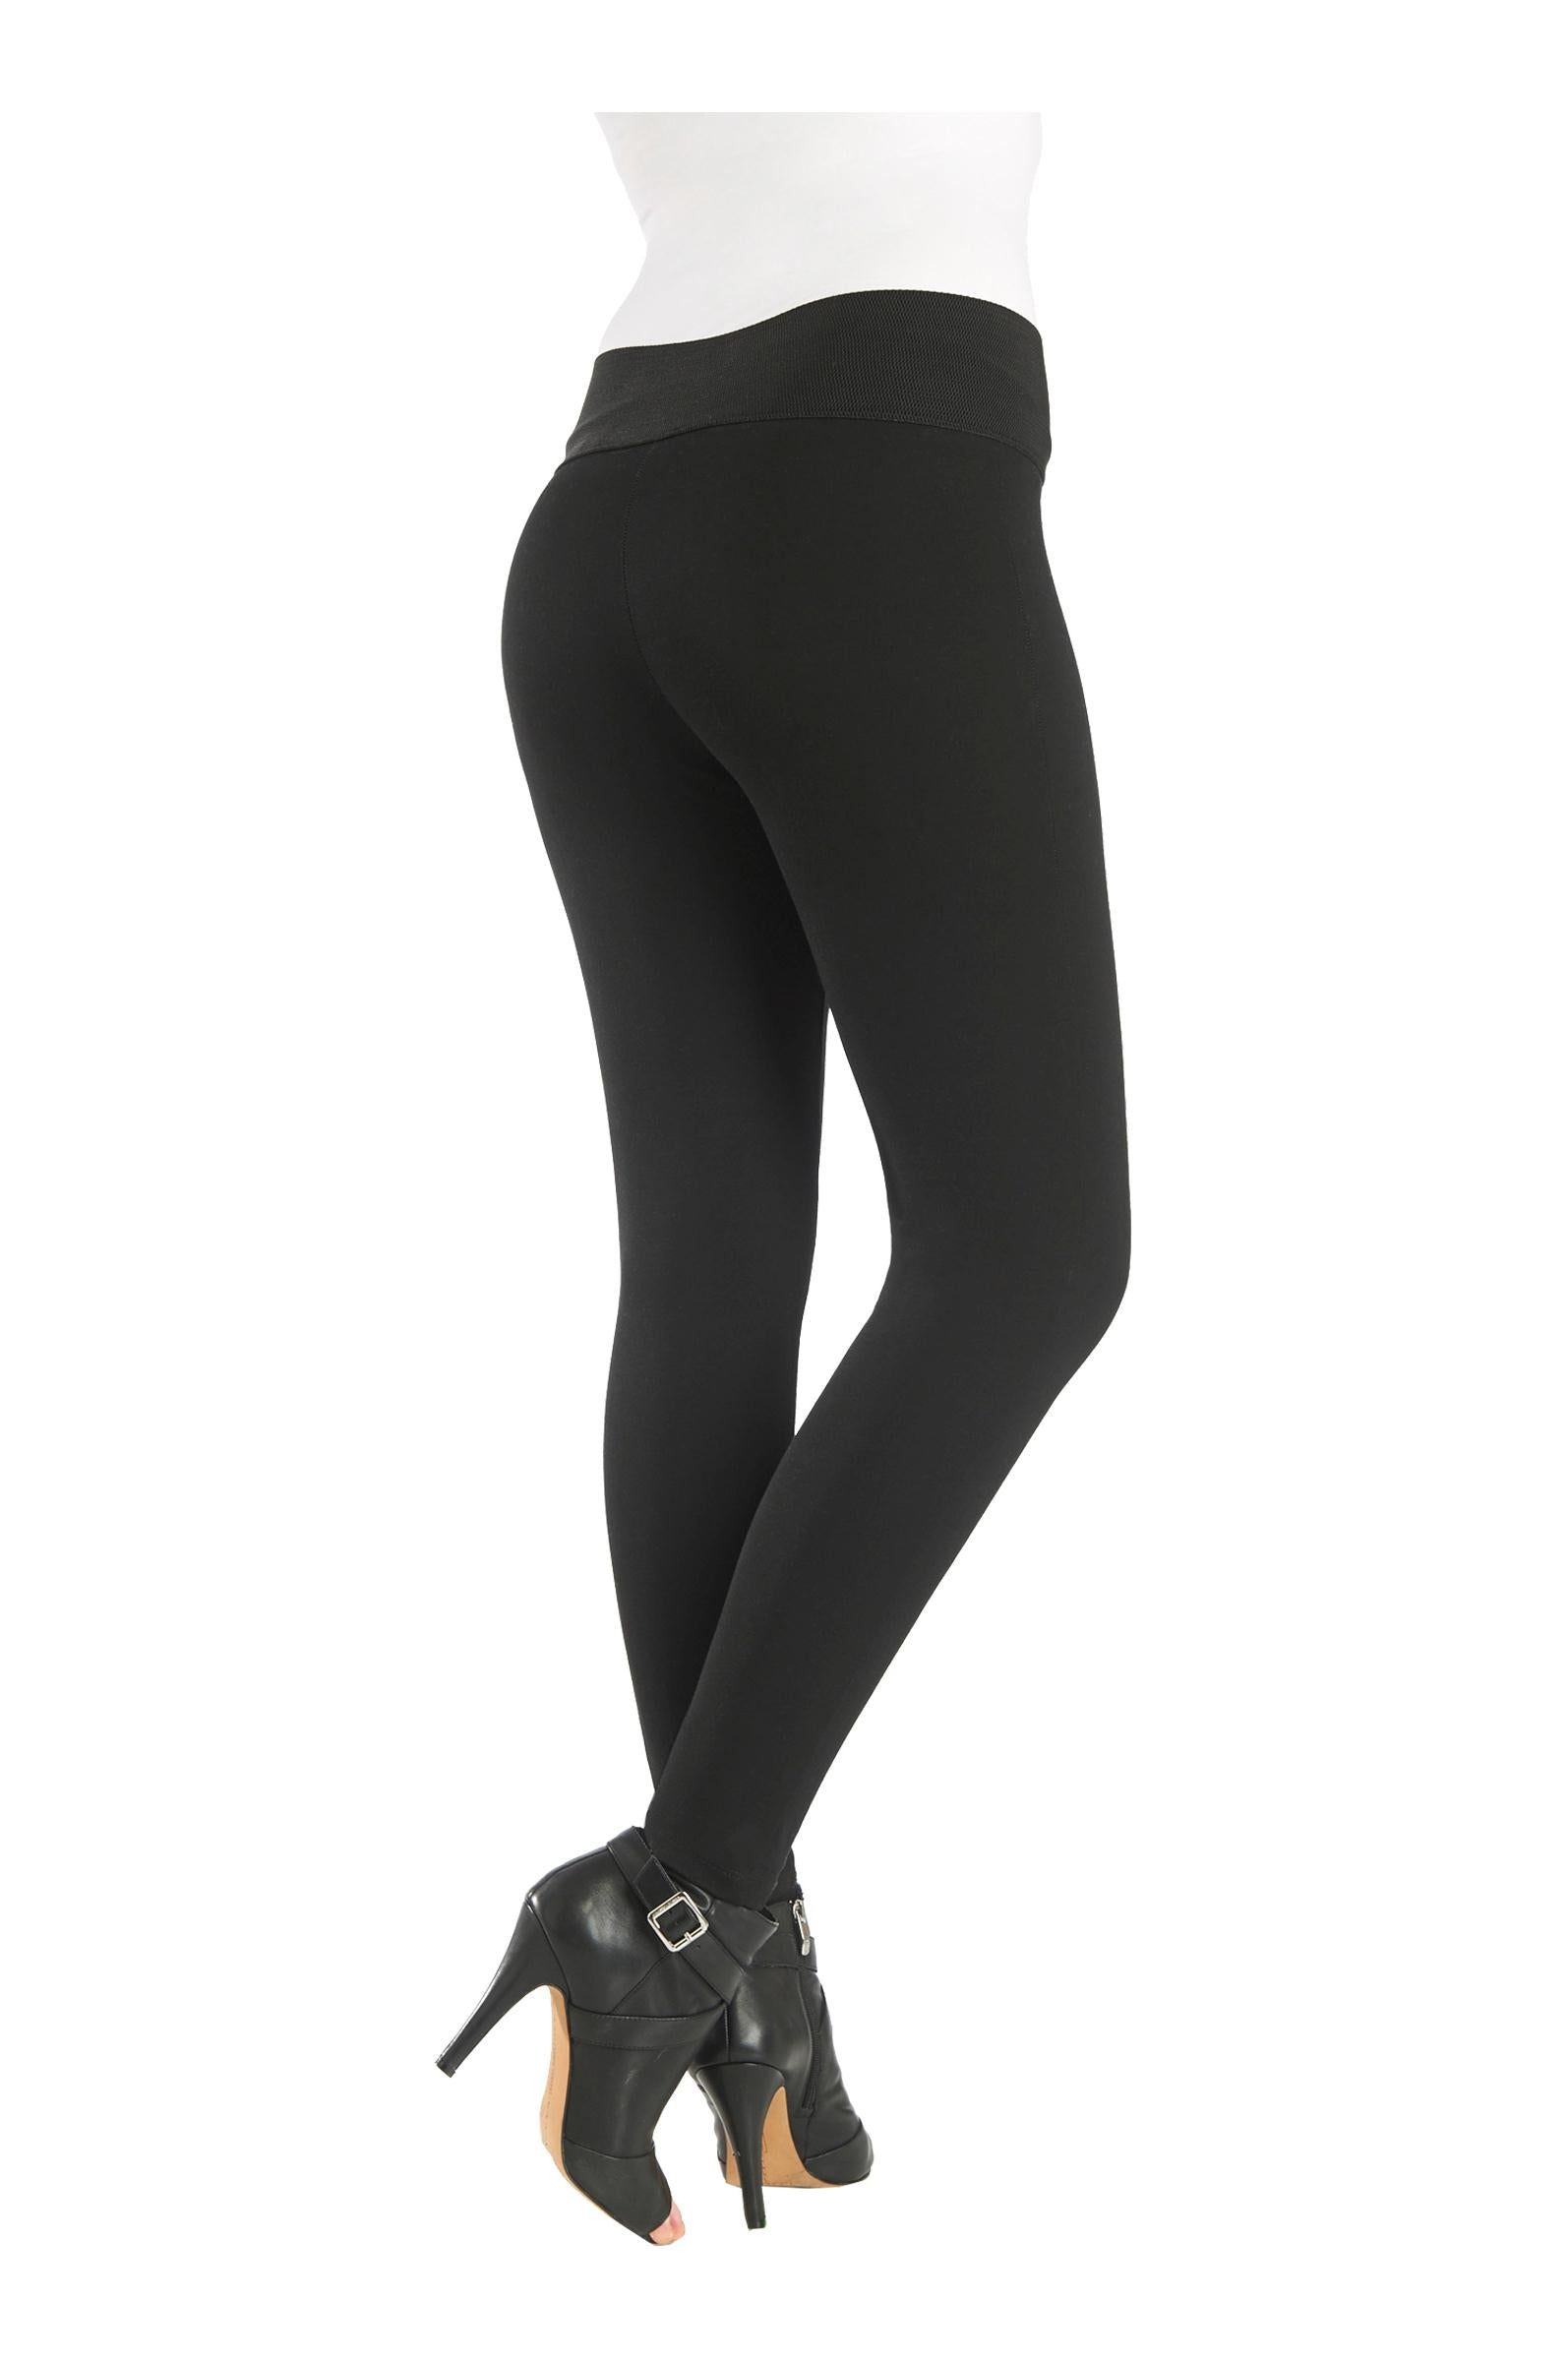 "Back view woman wearing black compression leggings with wide 3.5"" waistband from Nygard Slims"